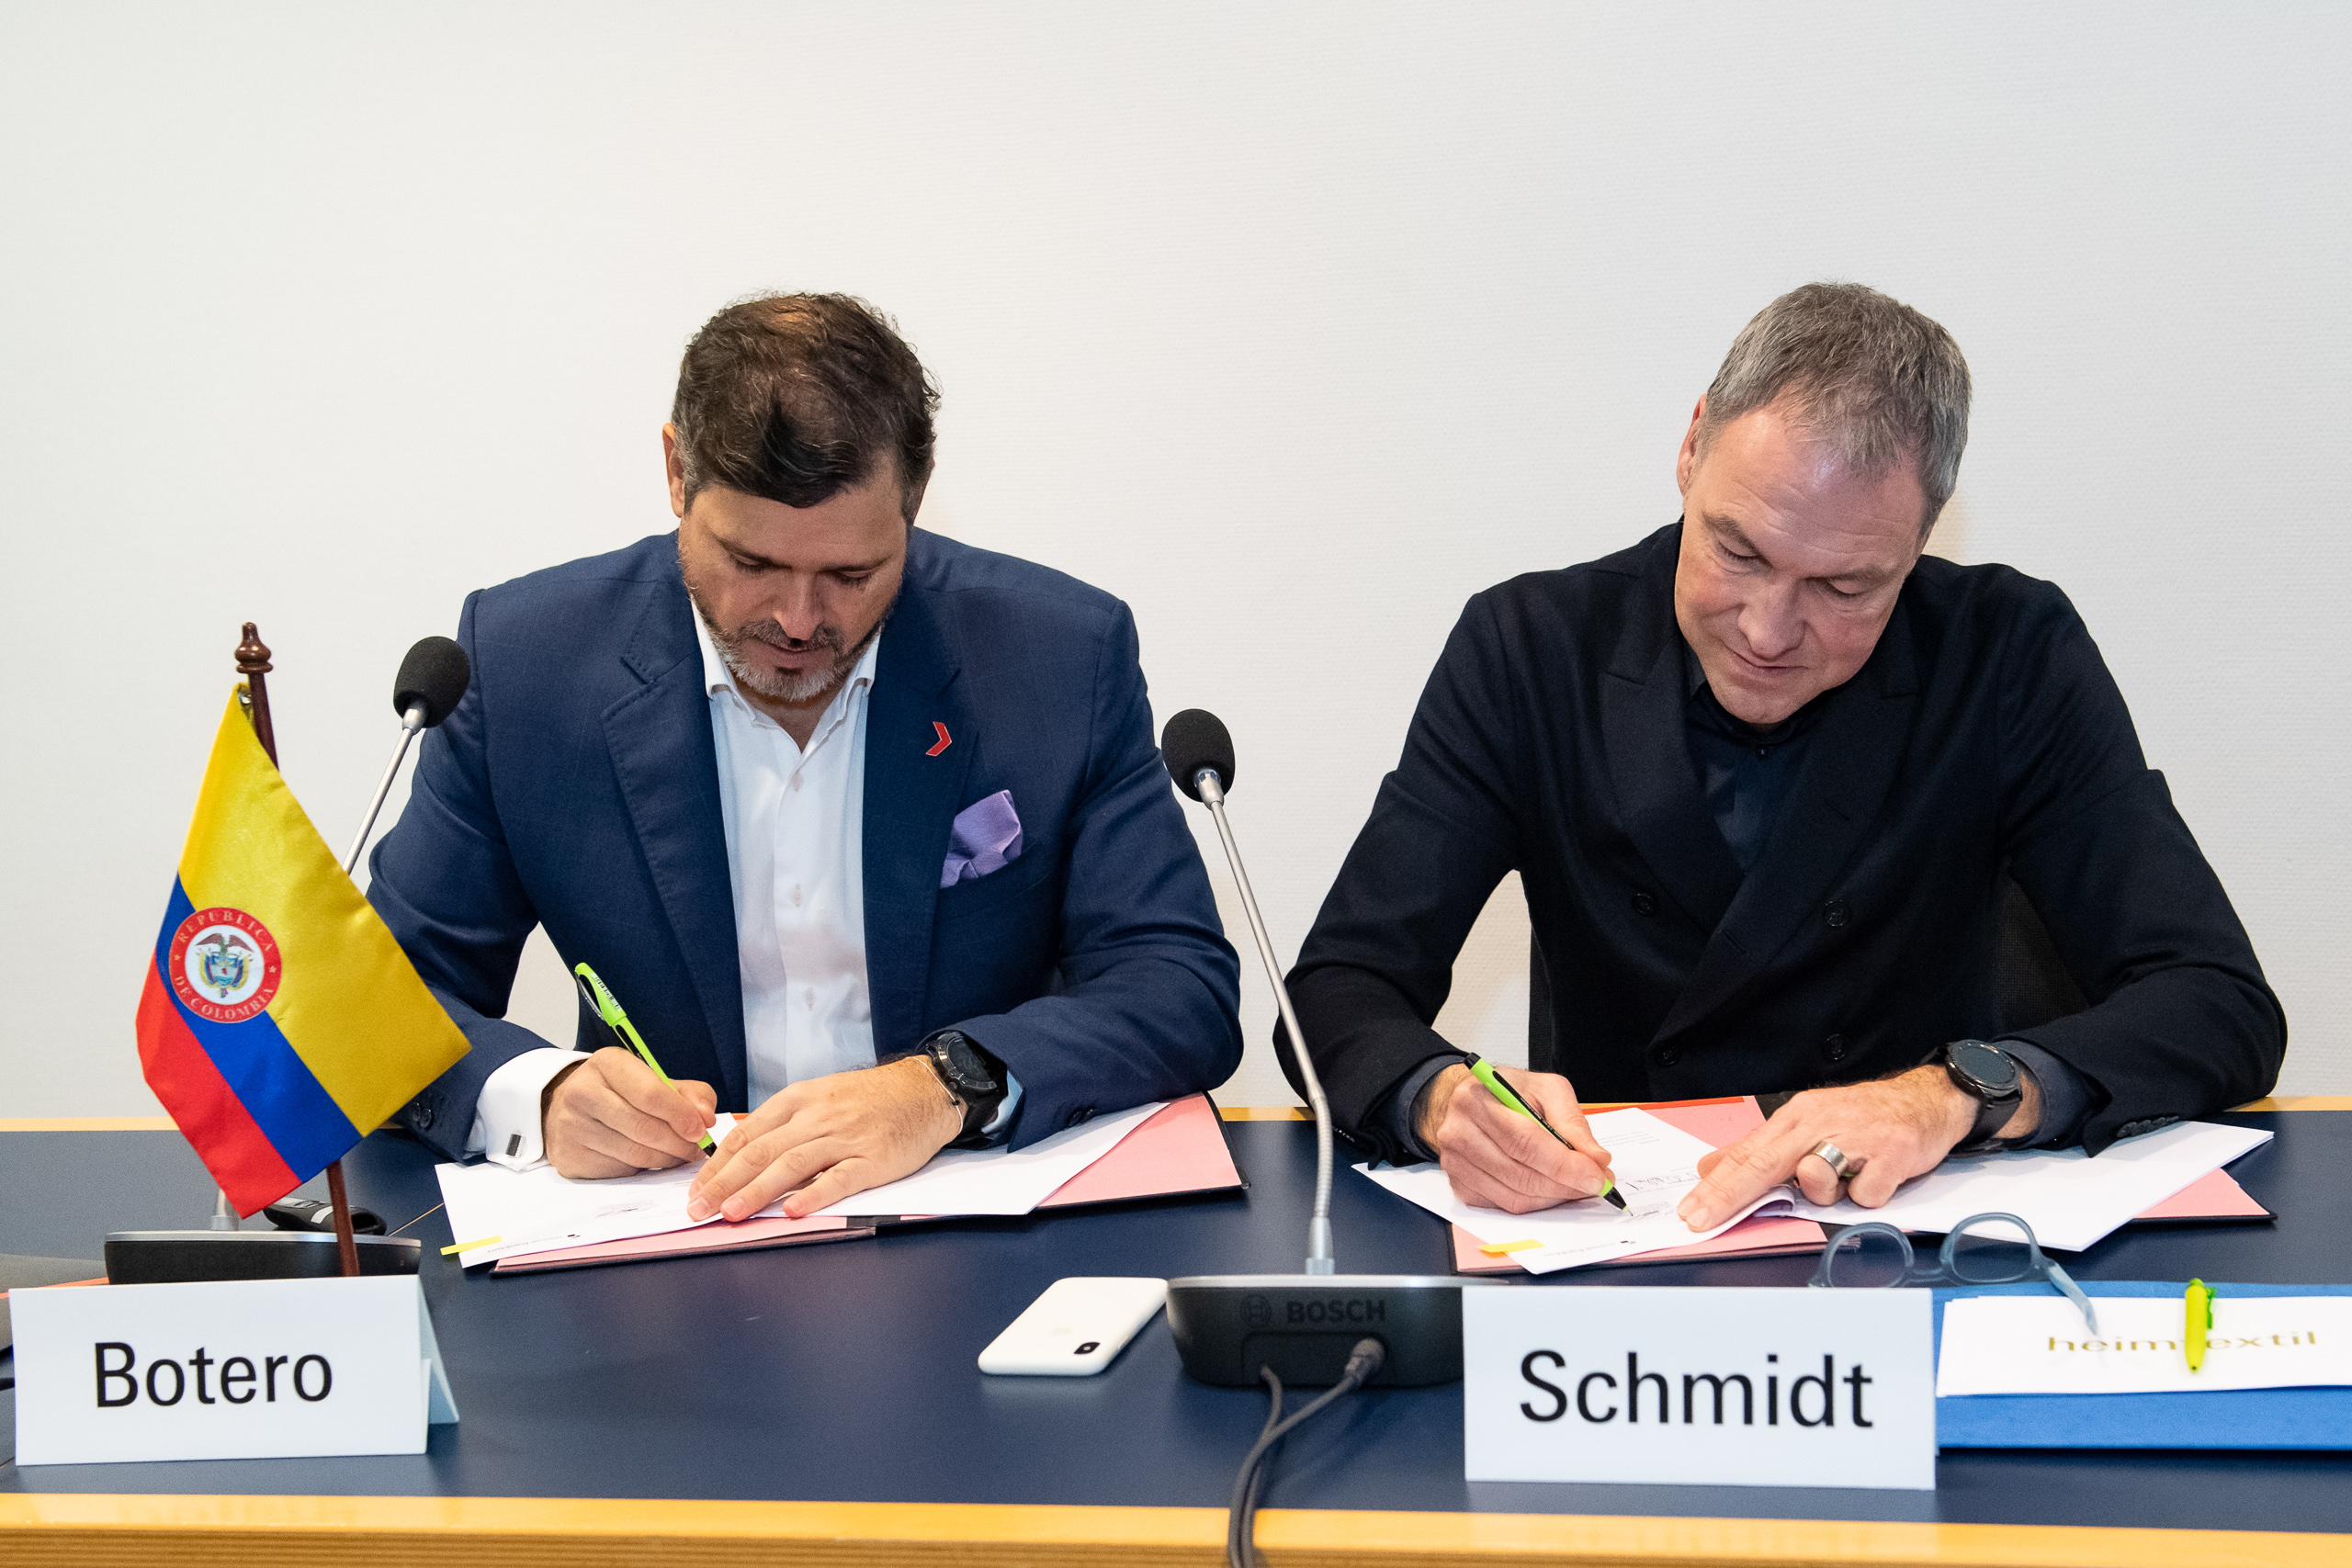 Heimtextil 2020, press conference and signing Heimtextil Colombia / Carlos Botero, CEO, Inexmoda and Olaf Schmidt, Vice President Textiles & Textile Technologies, Messe Frankfurt